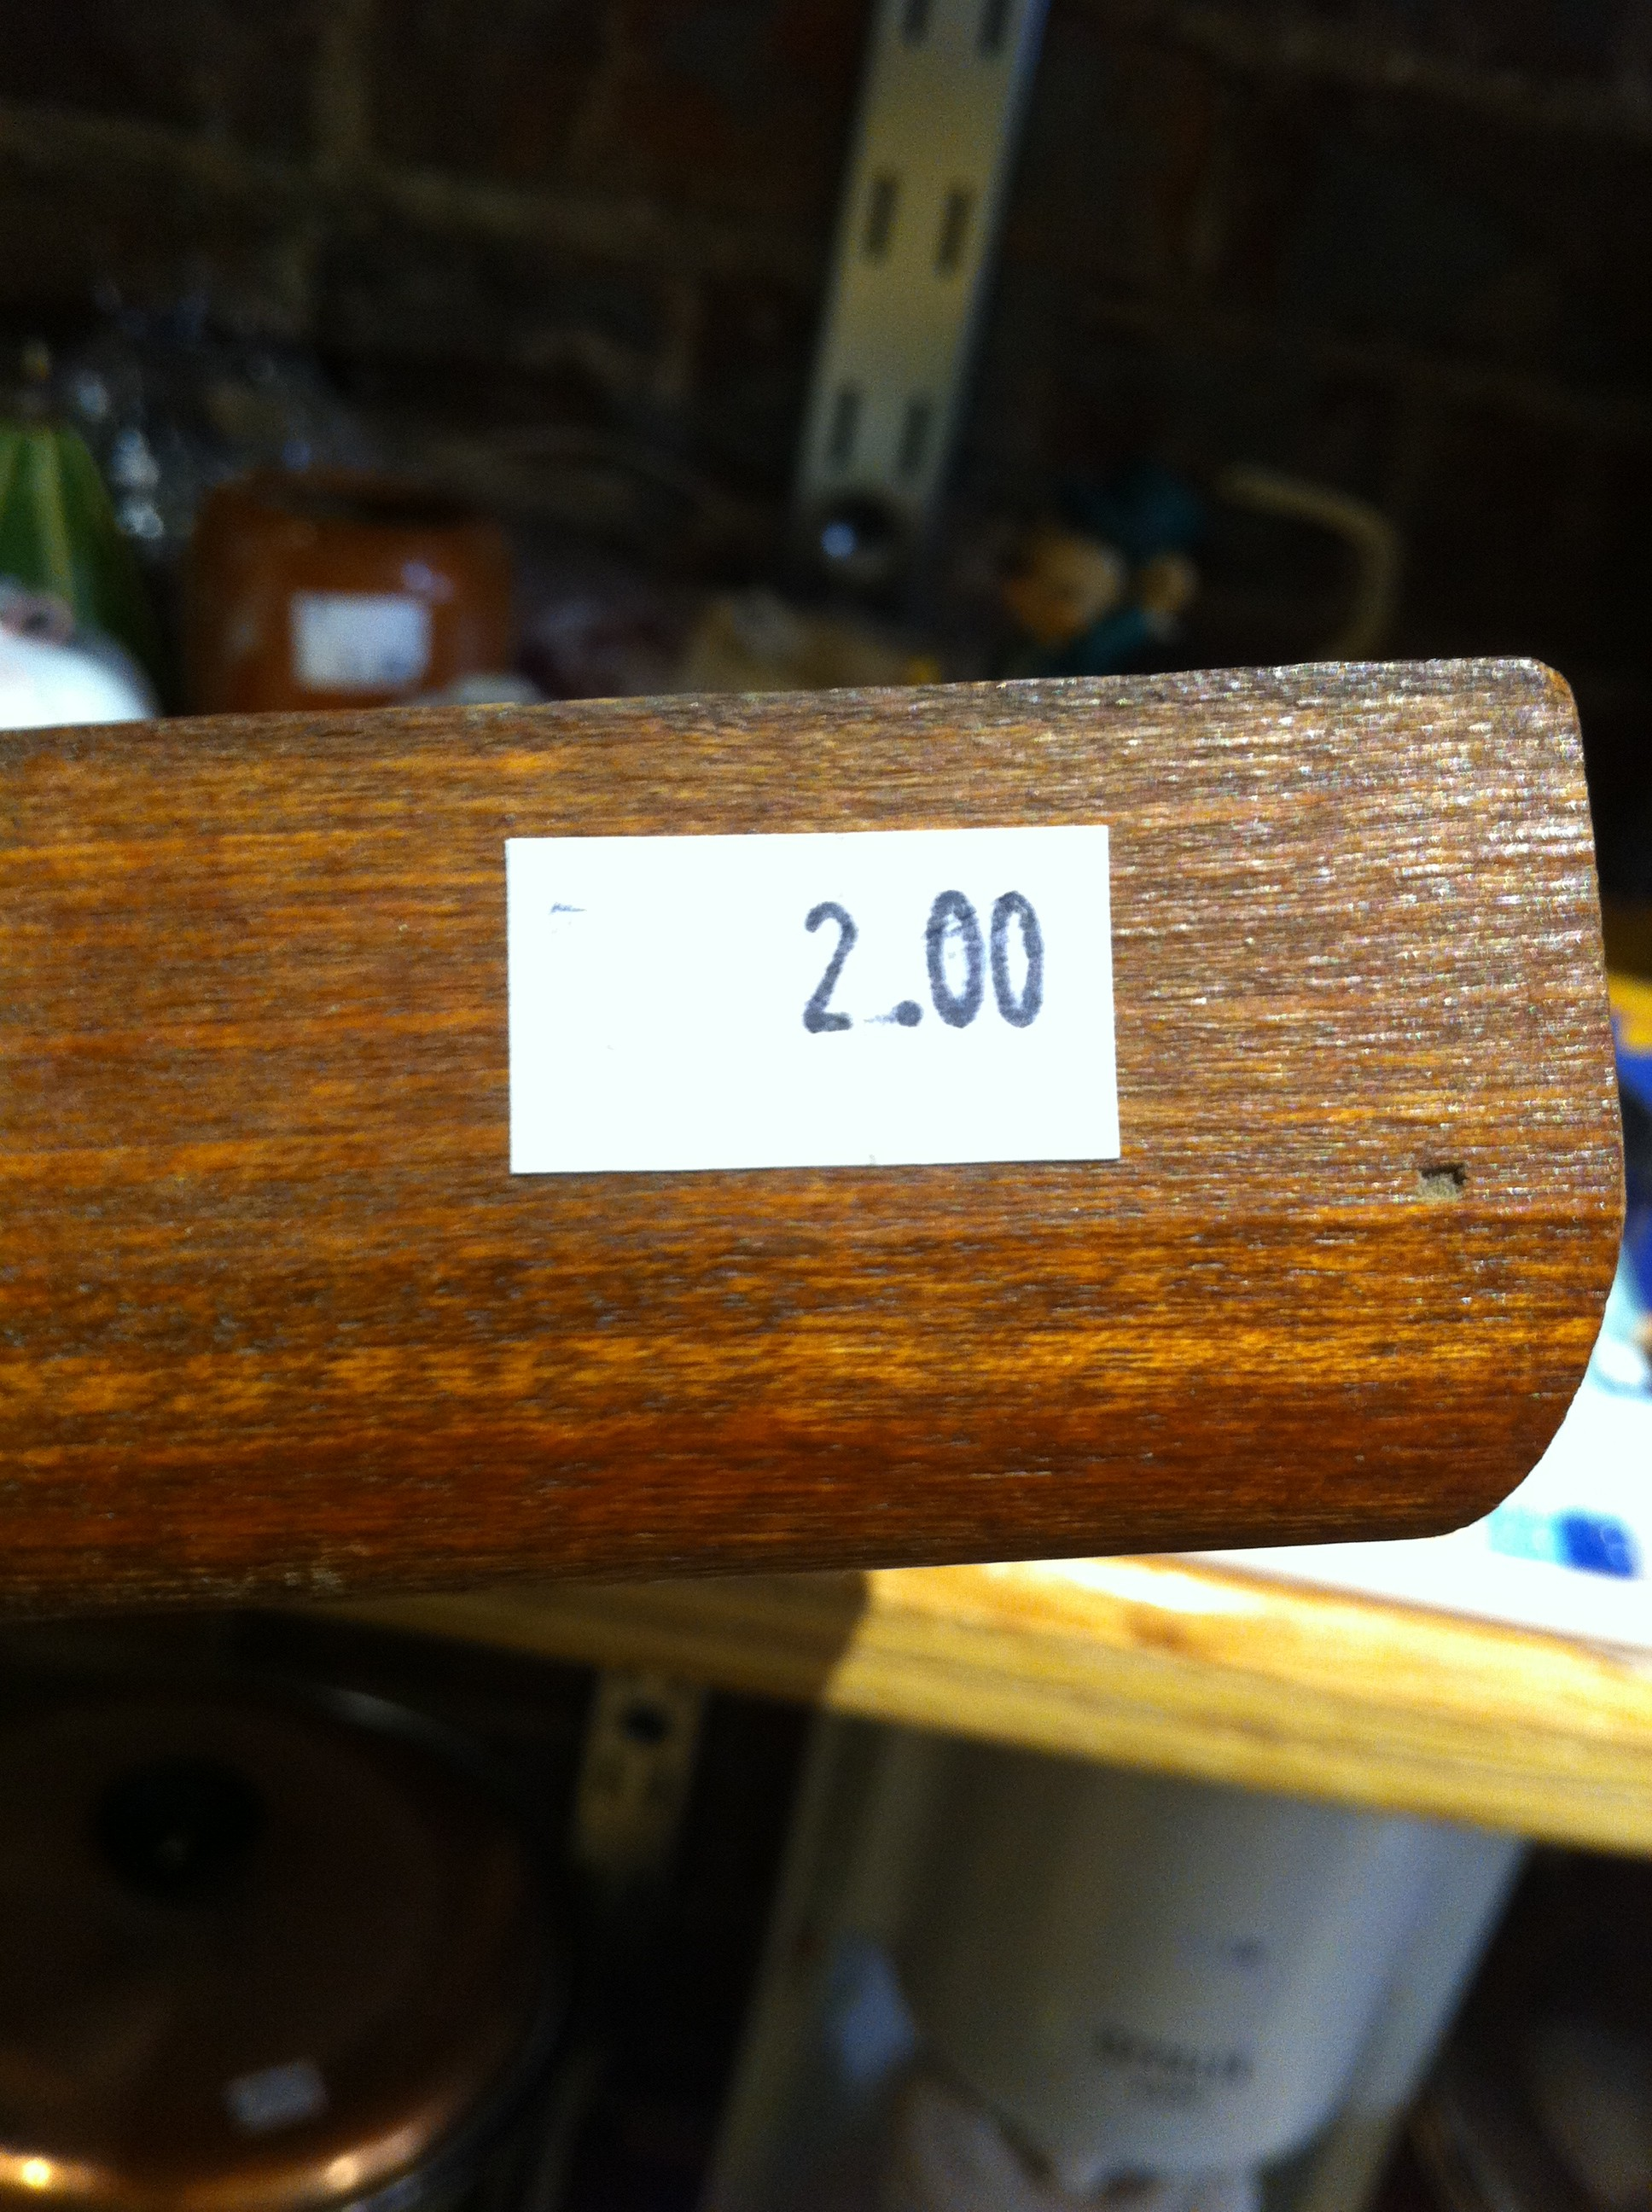 A pic of the price tag on a wooden framed piece of artwork